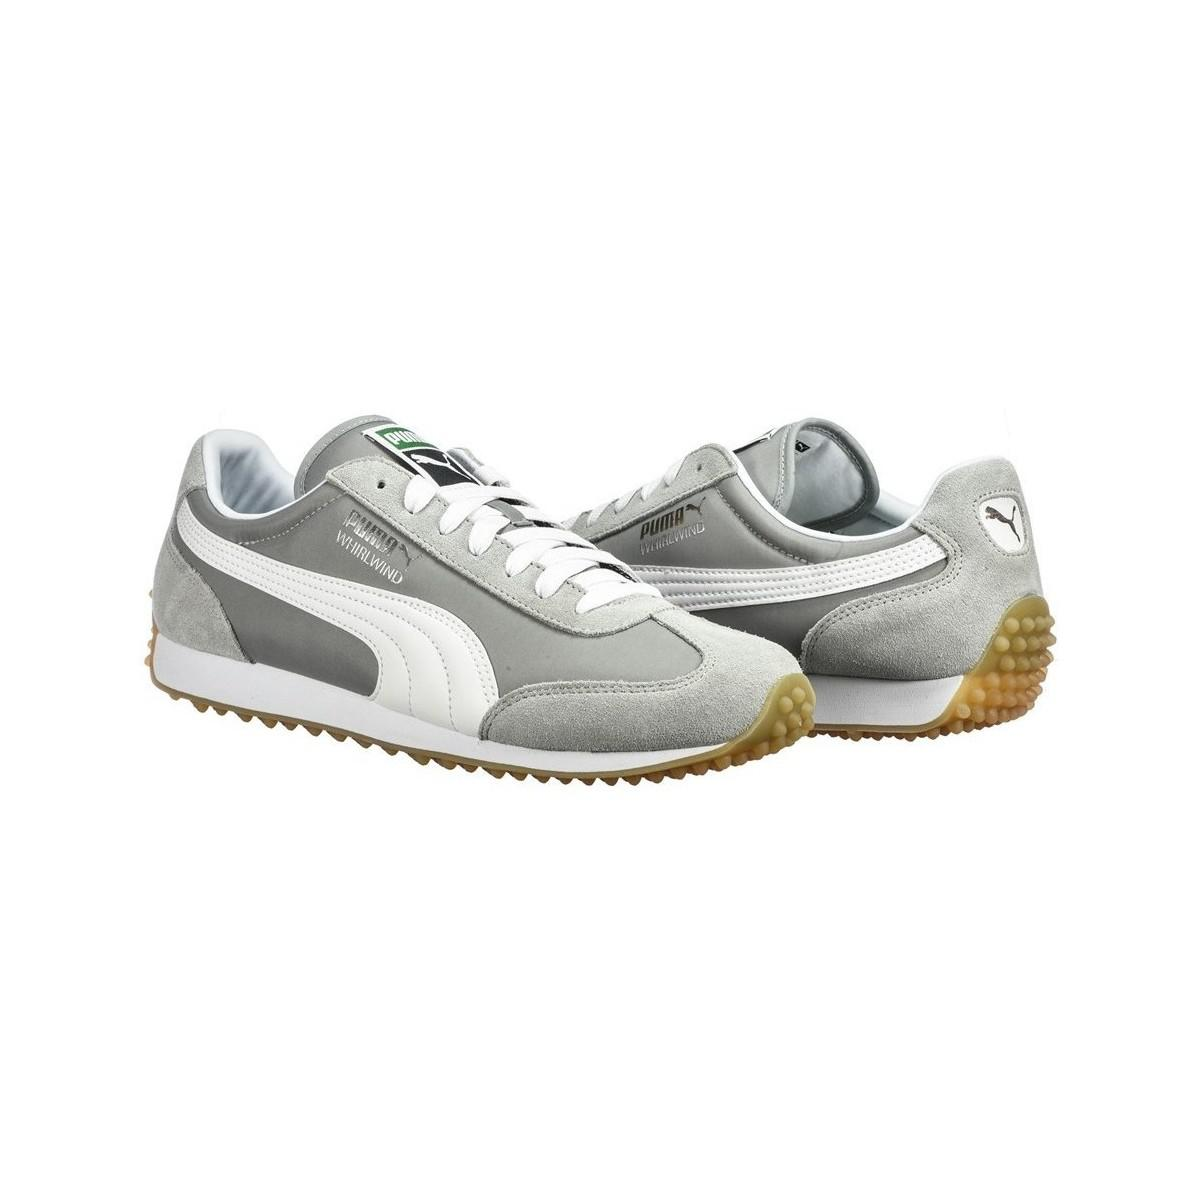 e5e43487d4b243 PUMA - Gray Whirlwind Classic Men s Shoes (trainers) In Grey - Lyst. View  fullscreen